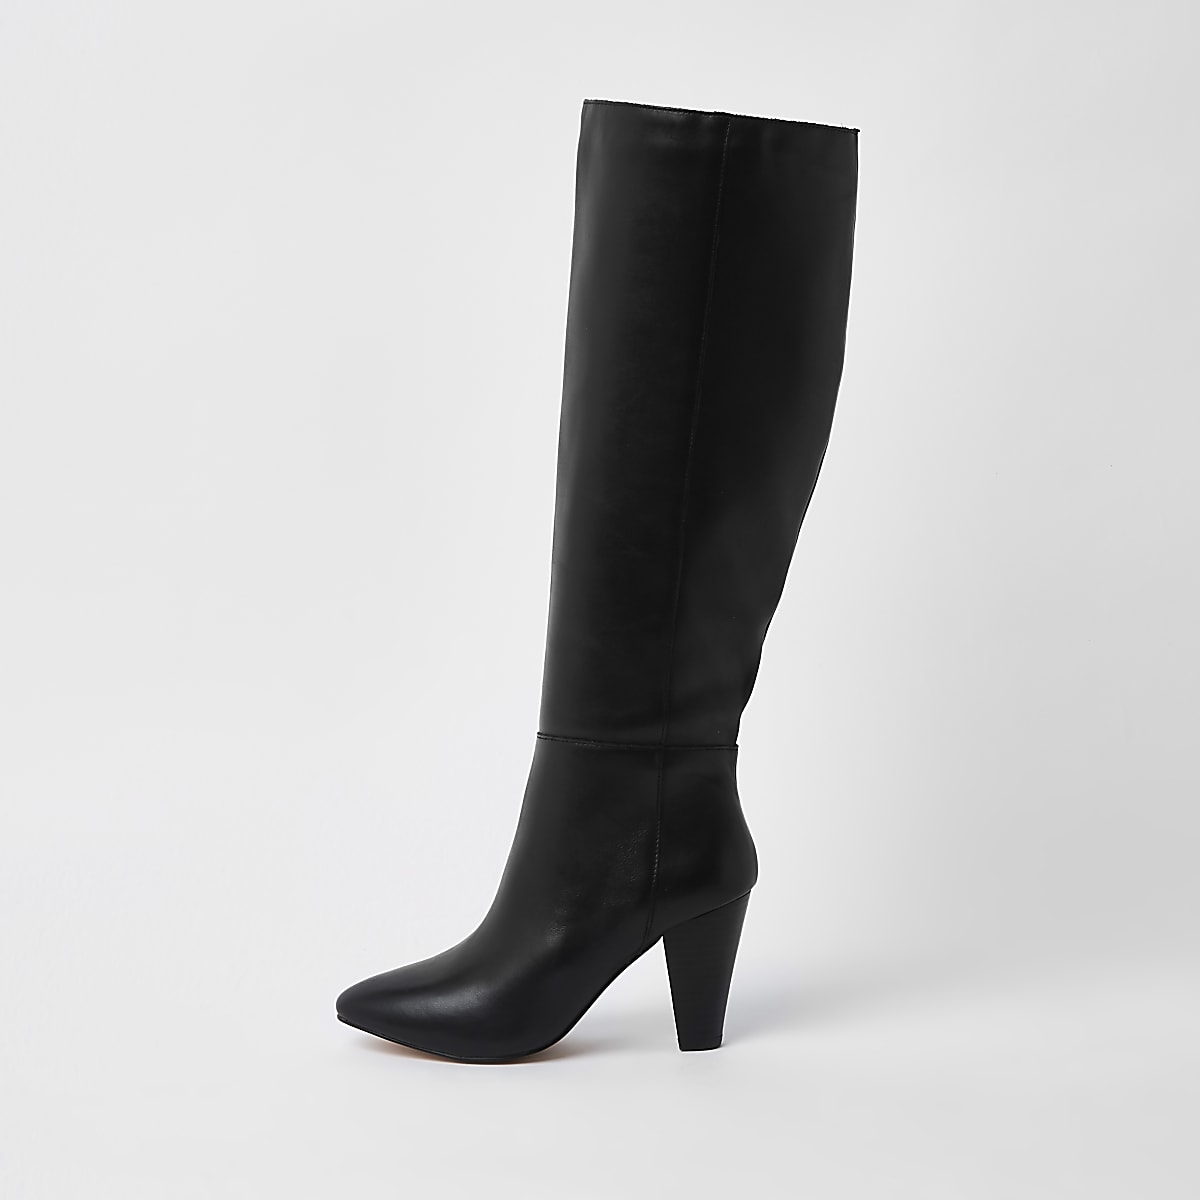 cfb4c2c6408f Black leather knee high block heel boots - Boots - Shoes   Boots - women